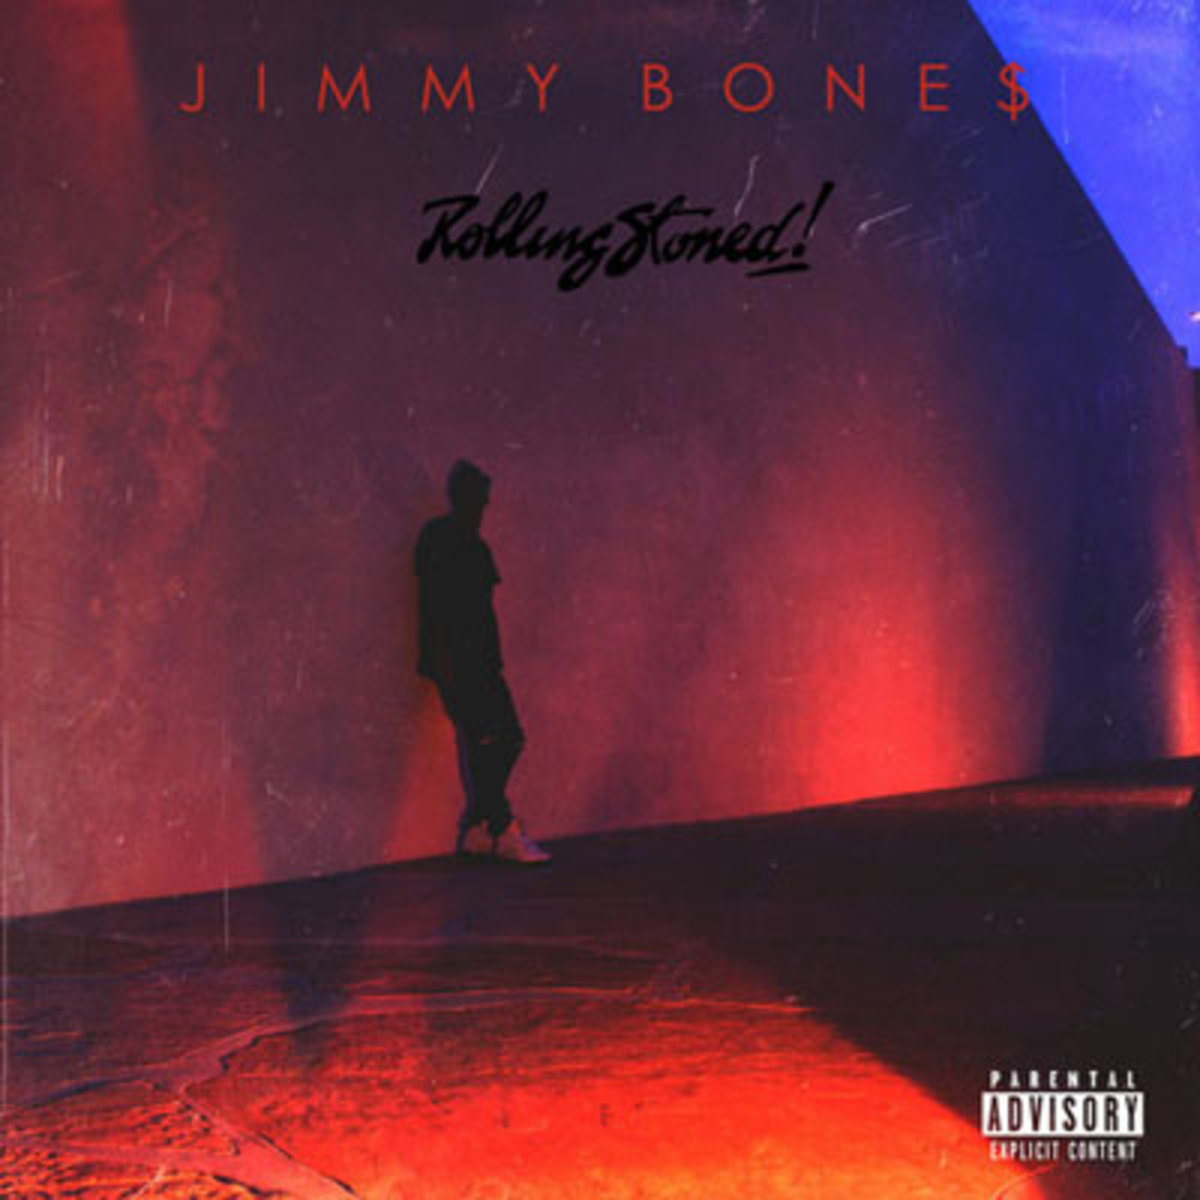 jimmybones-rollingstoned.jpg